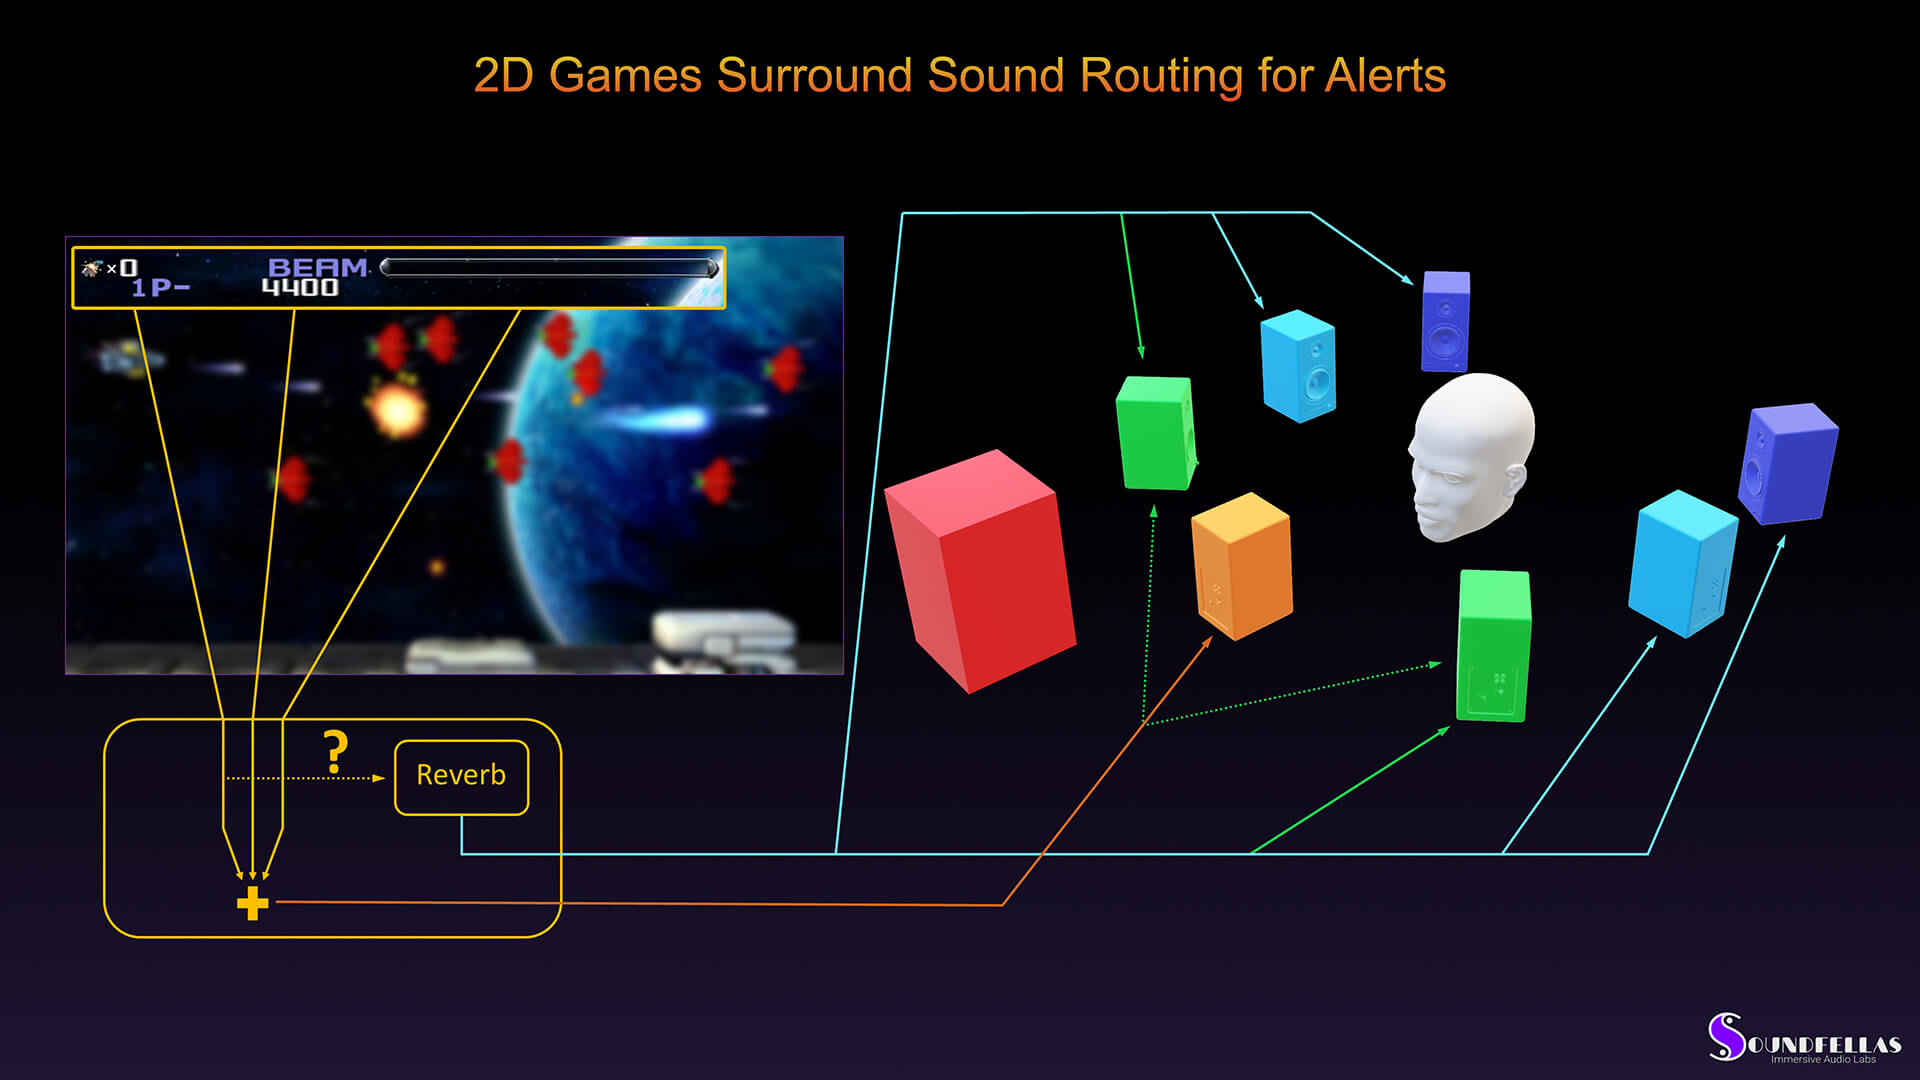 What 2D game developers fear about surround sound and why you should do it anyway page's image titled 2D game surround sound routing for alerts